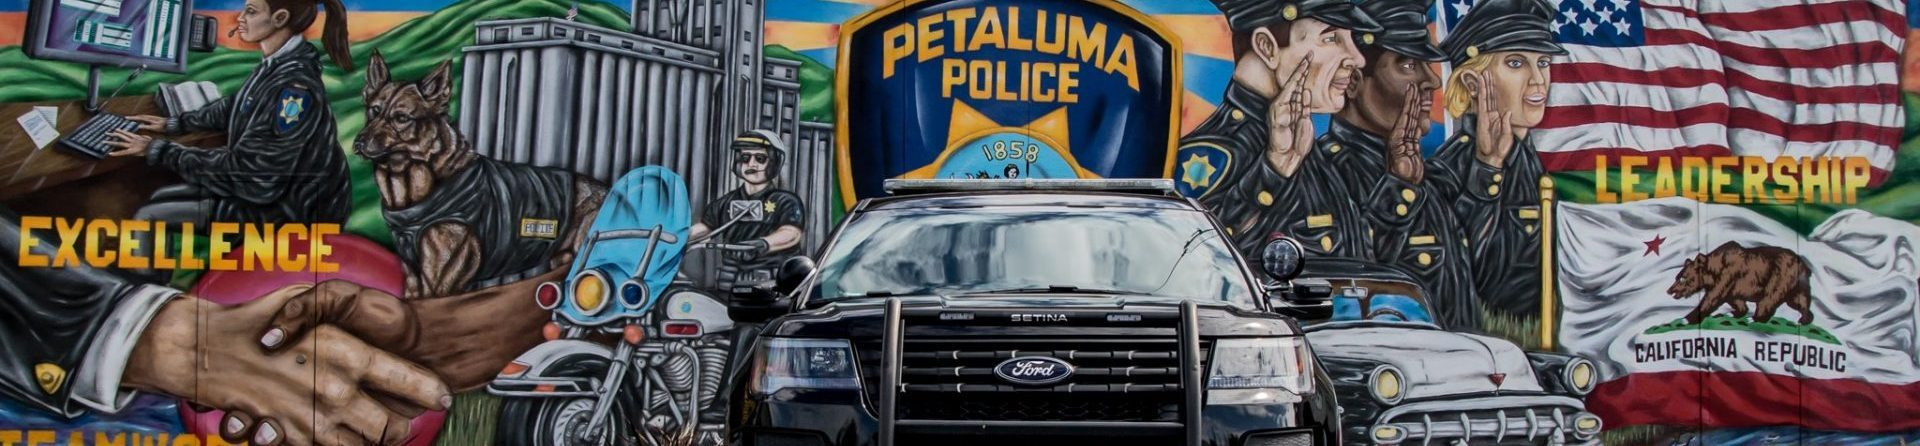 police mural with patrol car